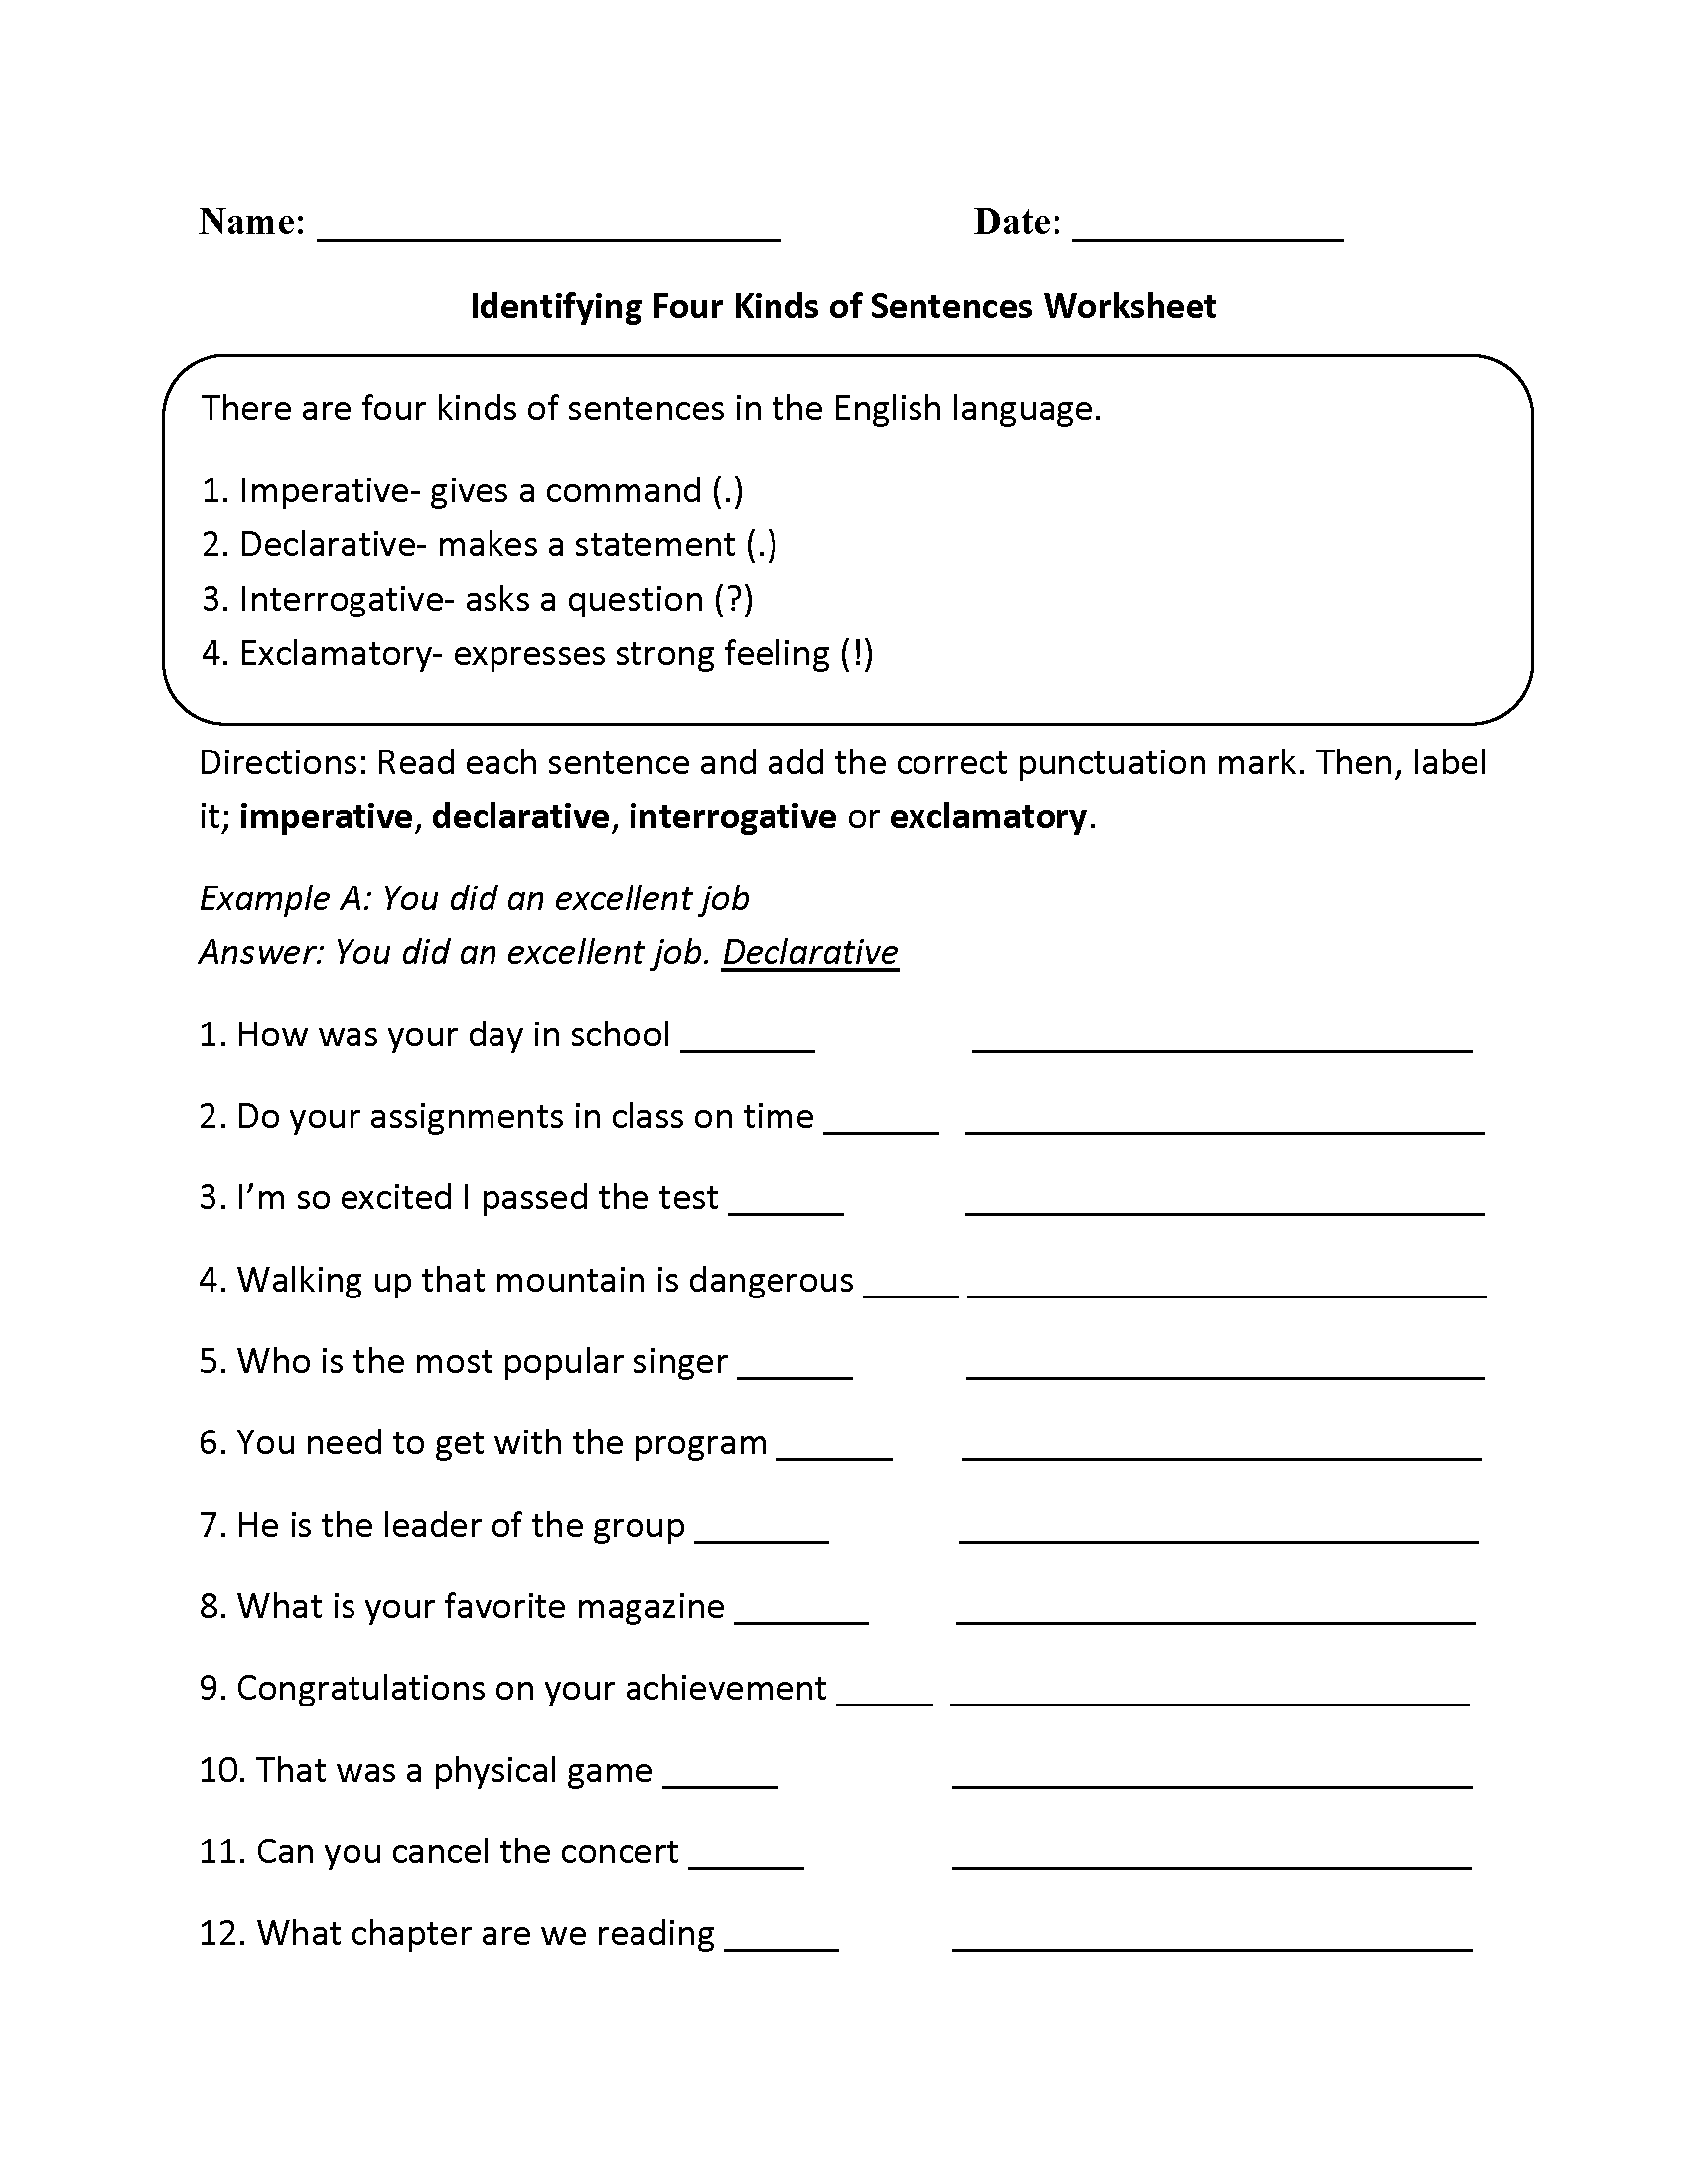 Printables Kinds Of Sentences Worksheet sentences worksheets kinds of four worksheet